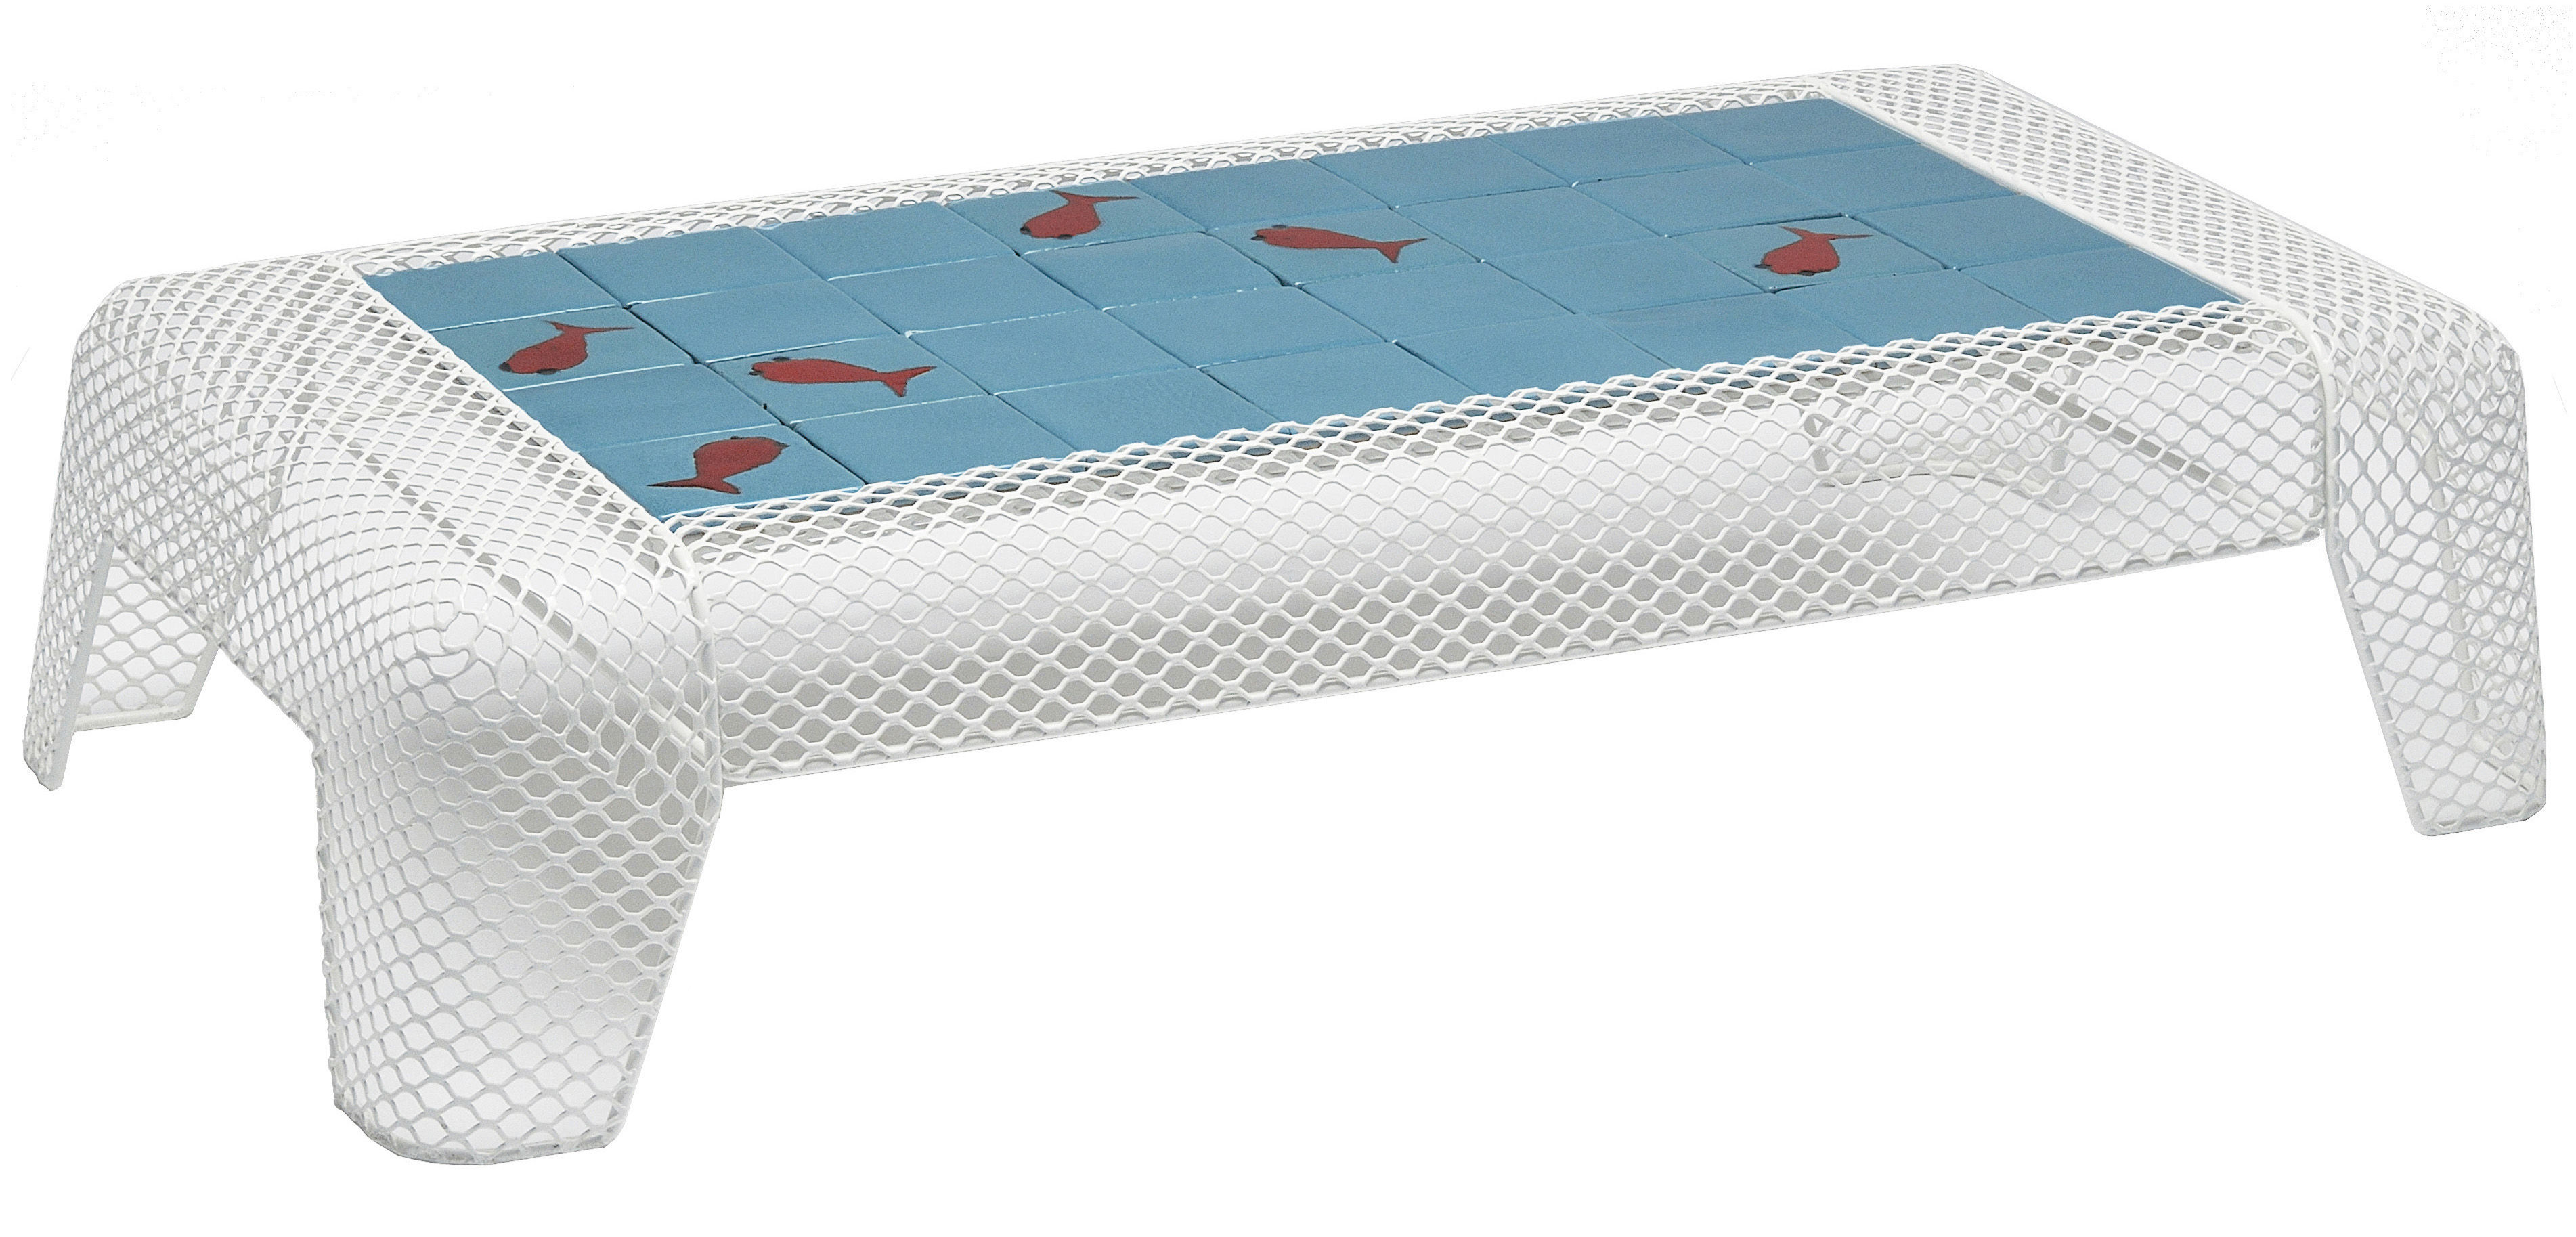 Furniture - Coffee Tables - Ivy Coffee table - Ceramic fish pattern by Emu - White / Blue mosaic with Fish patterns - Enamled terracotta, Steel